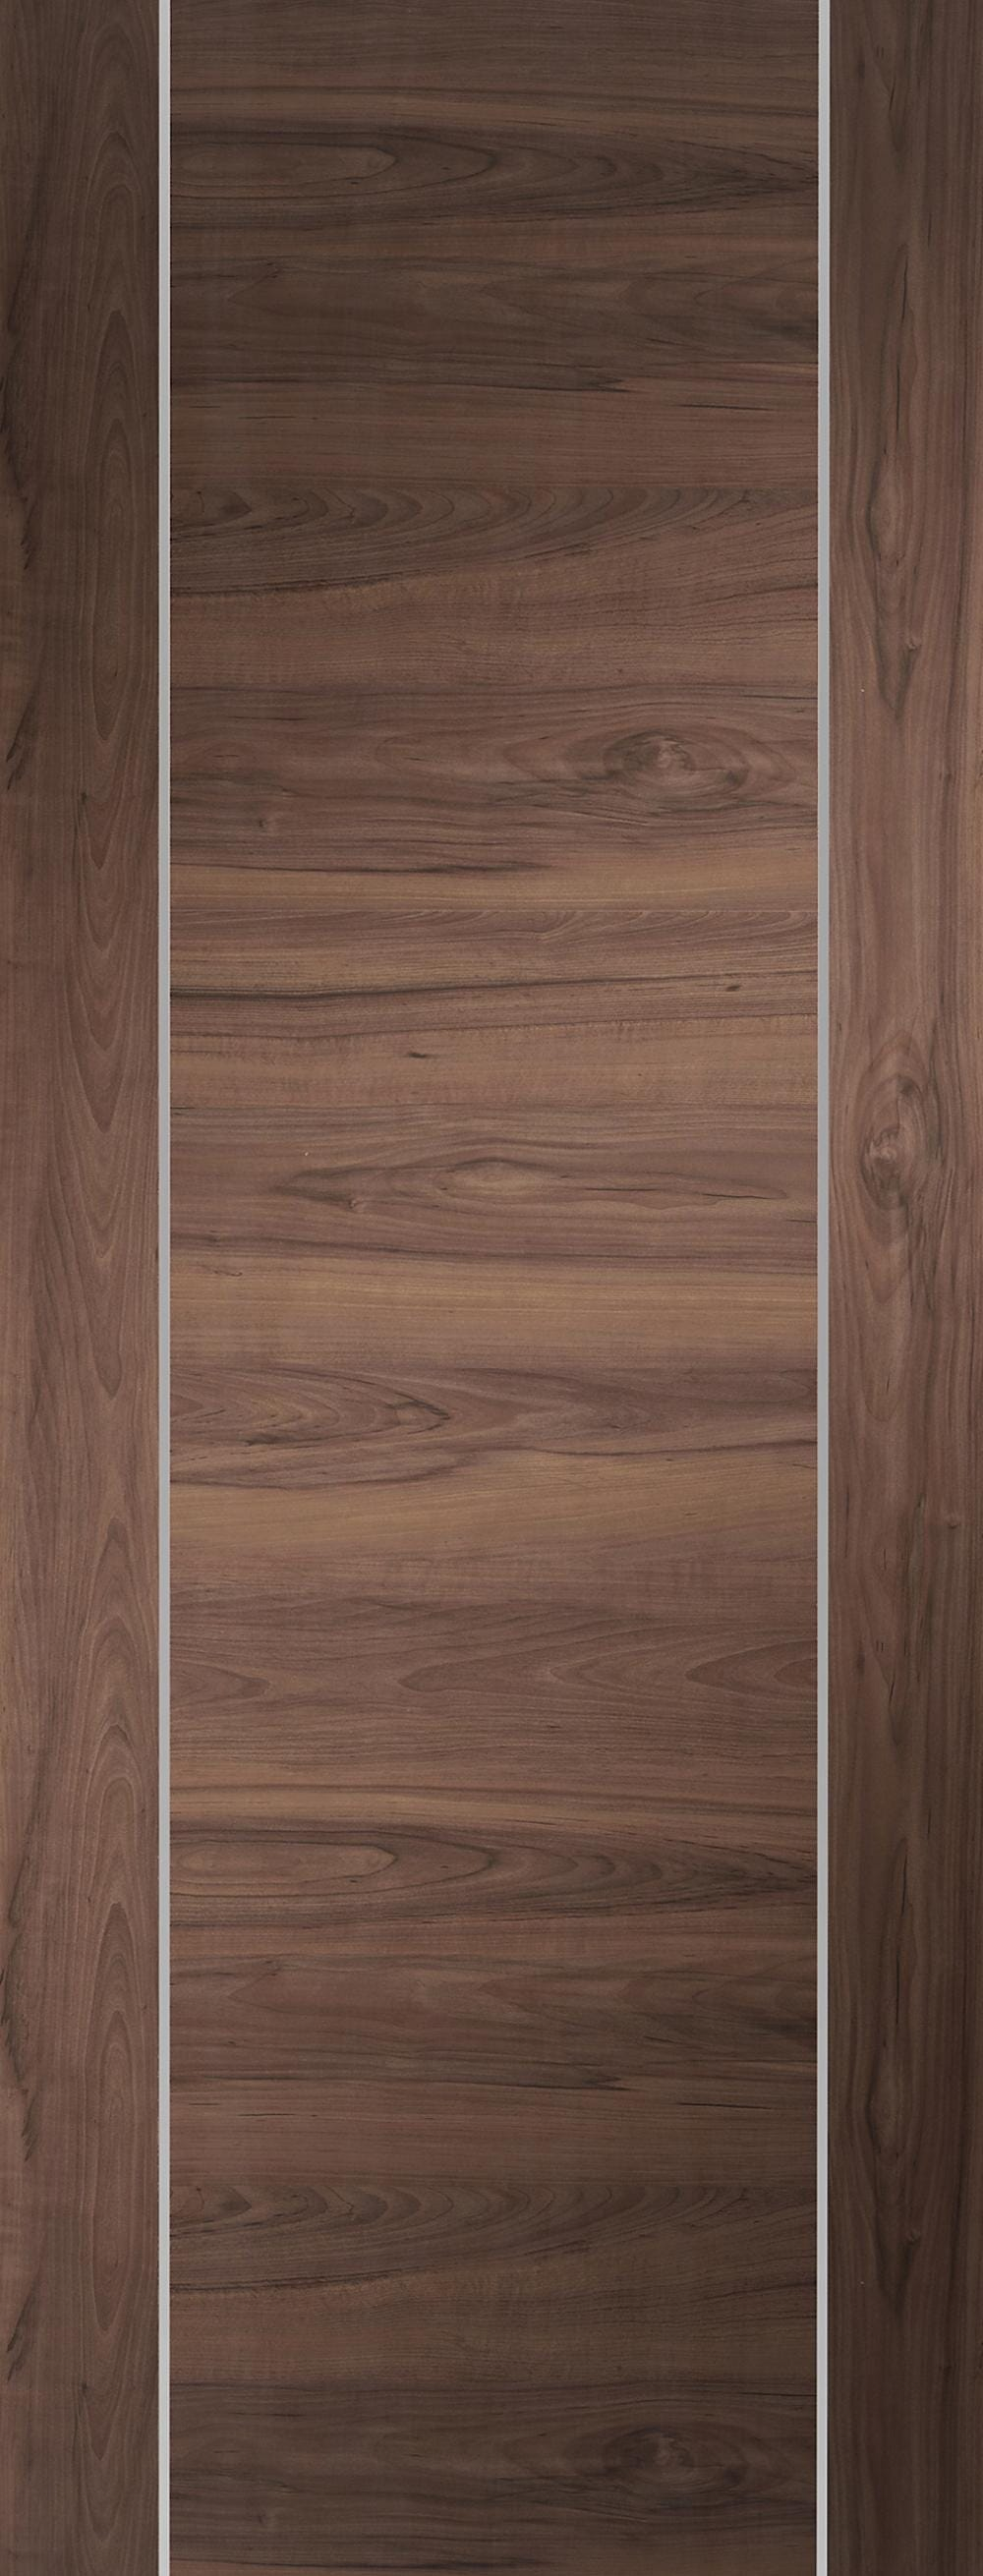 Forli Walnut - Prefinished Image